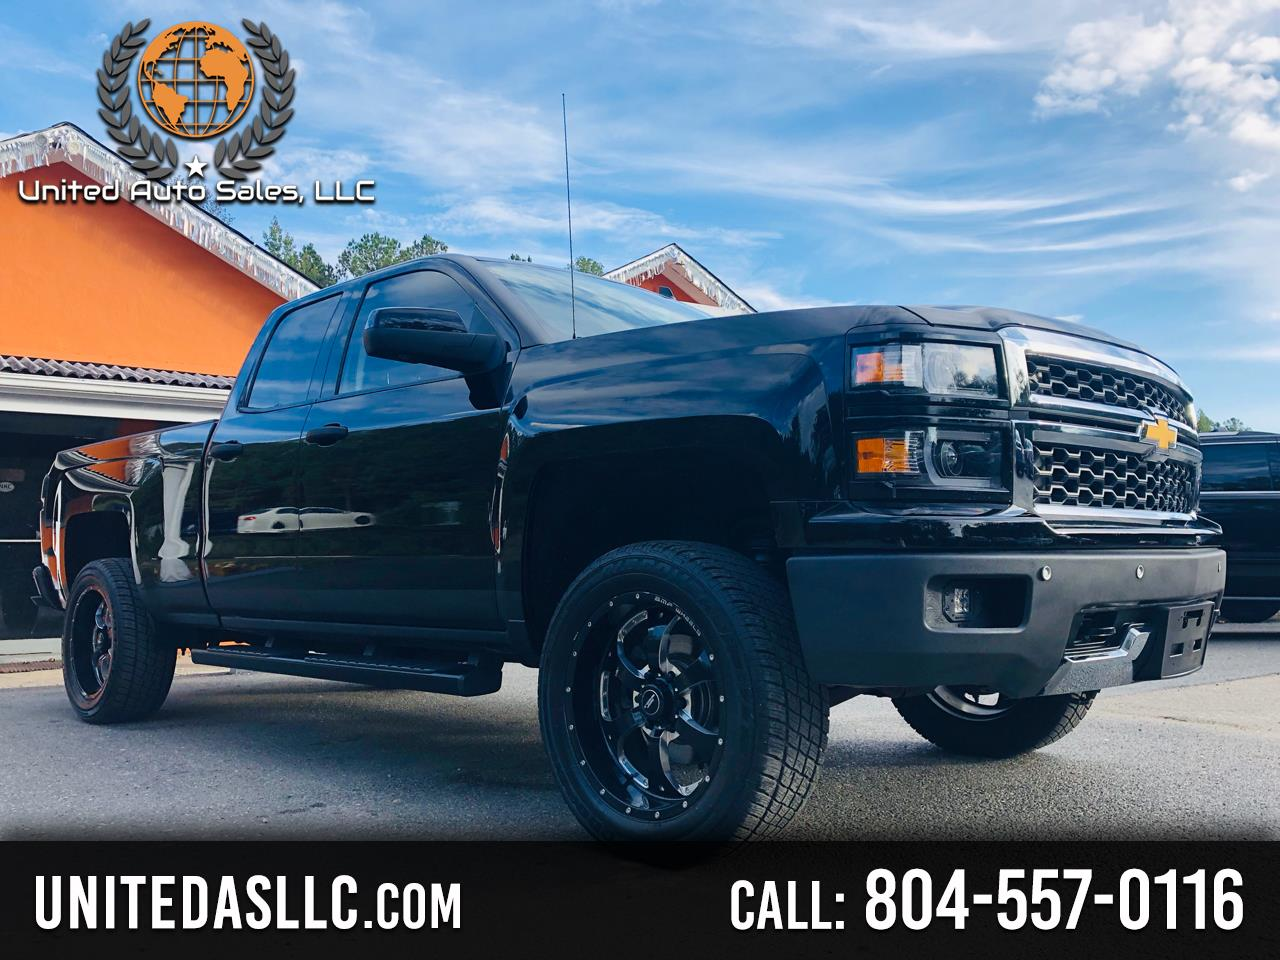 2014 Chevrolet Silverado 1500 LTZ Ext. Cab Short Box 4WD